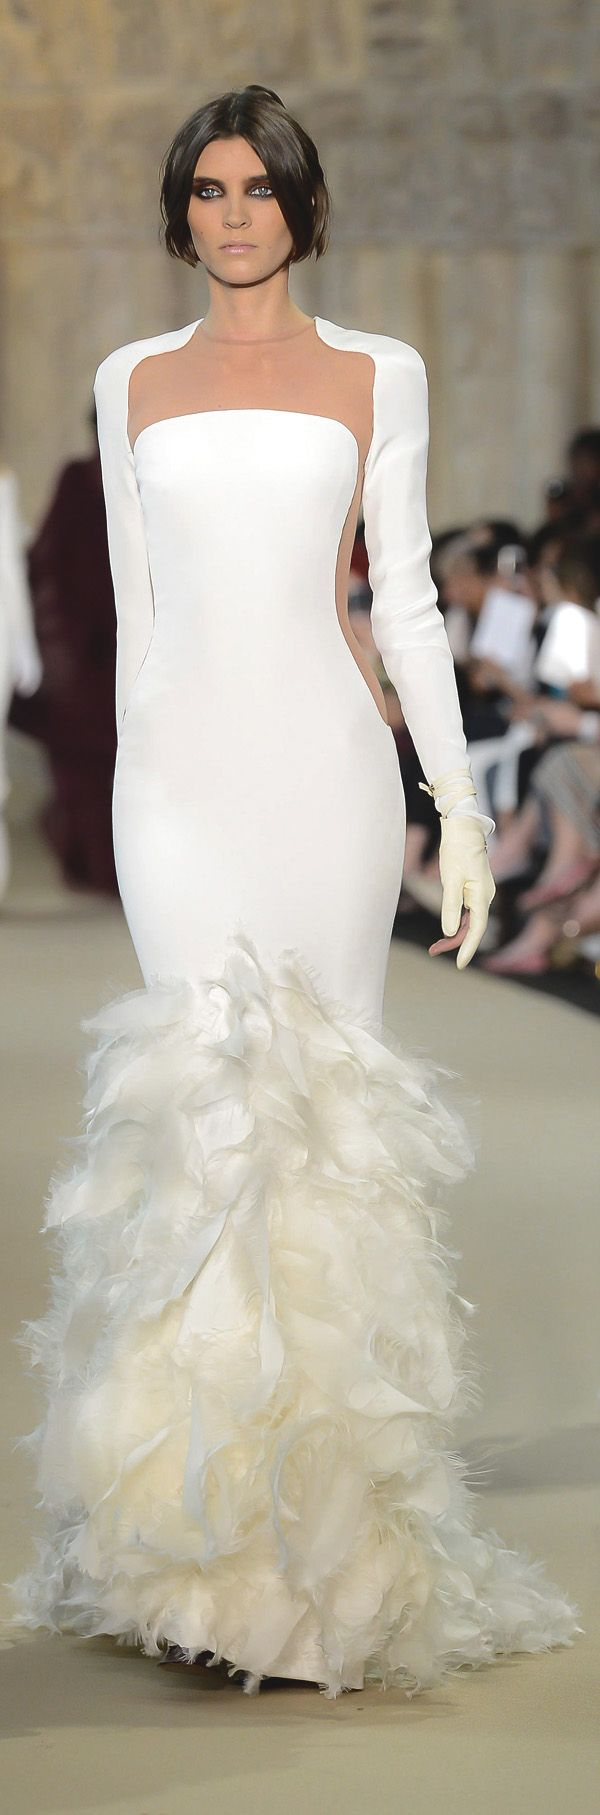 ✜ Stéphane Rolland - Couture - Fall-Winter 2013 ✜ http://en.flip-zone.com/fashion/couture-1/fashion-houses/stephane-rolland-2964